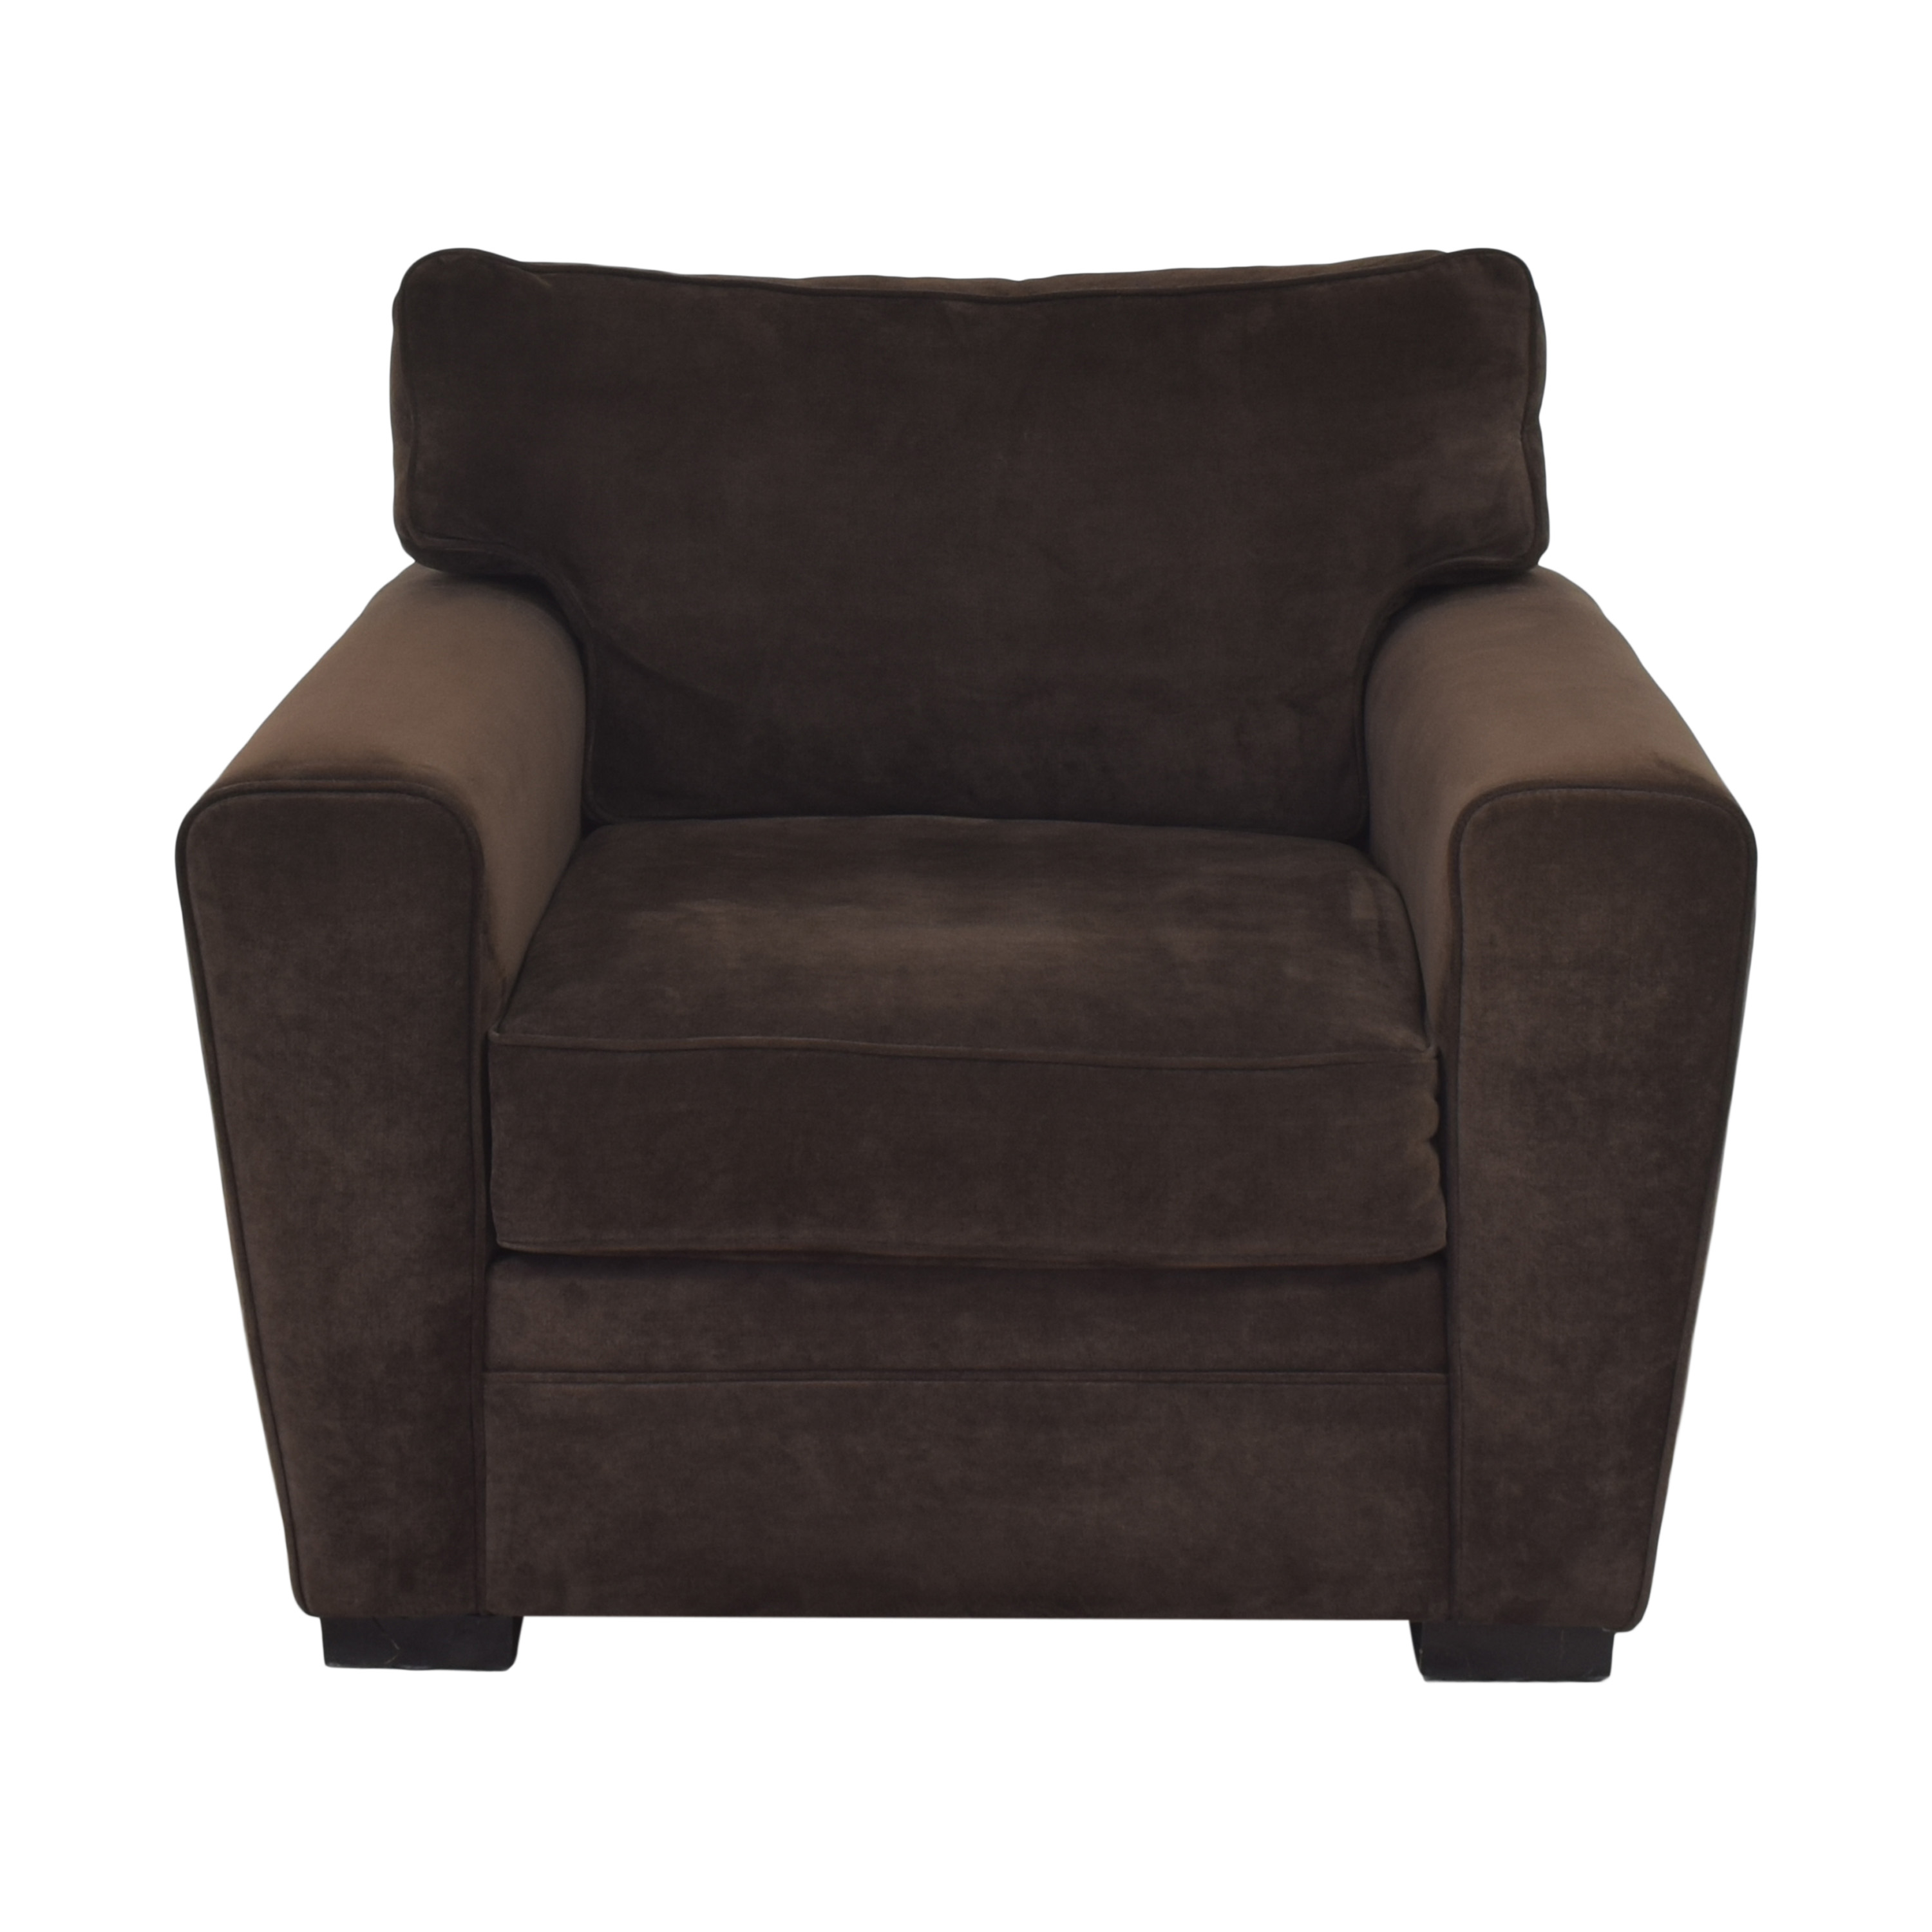 Raymour & Flanigan Modern Accent Chair / Accent Chairs